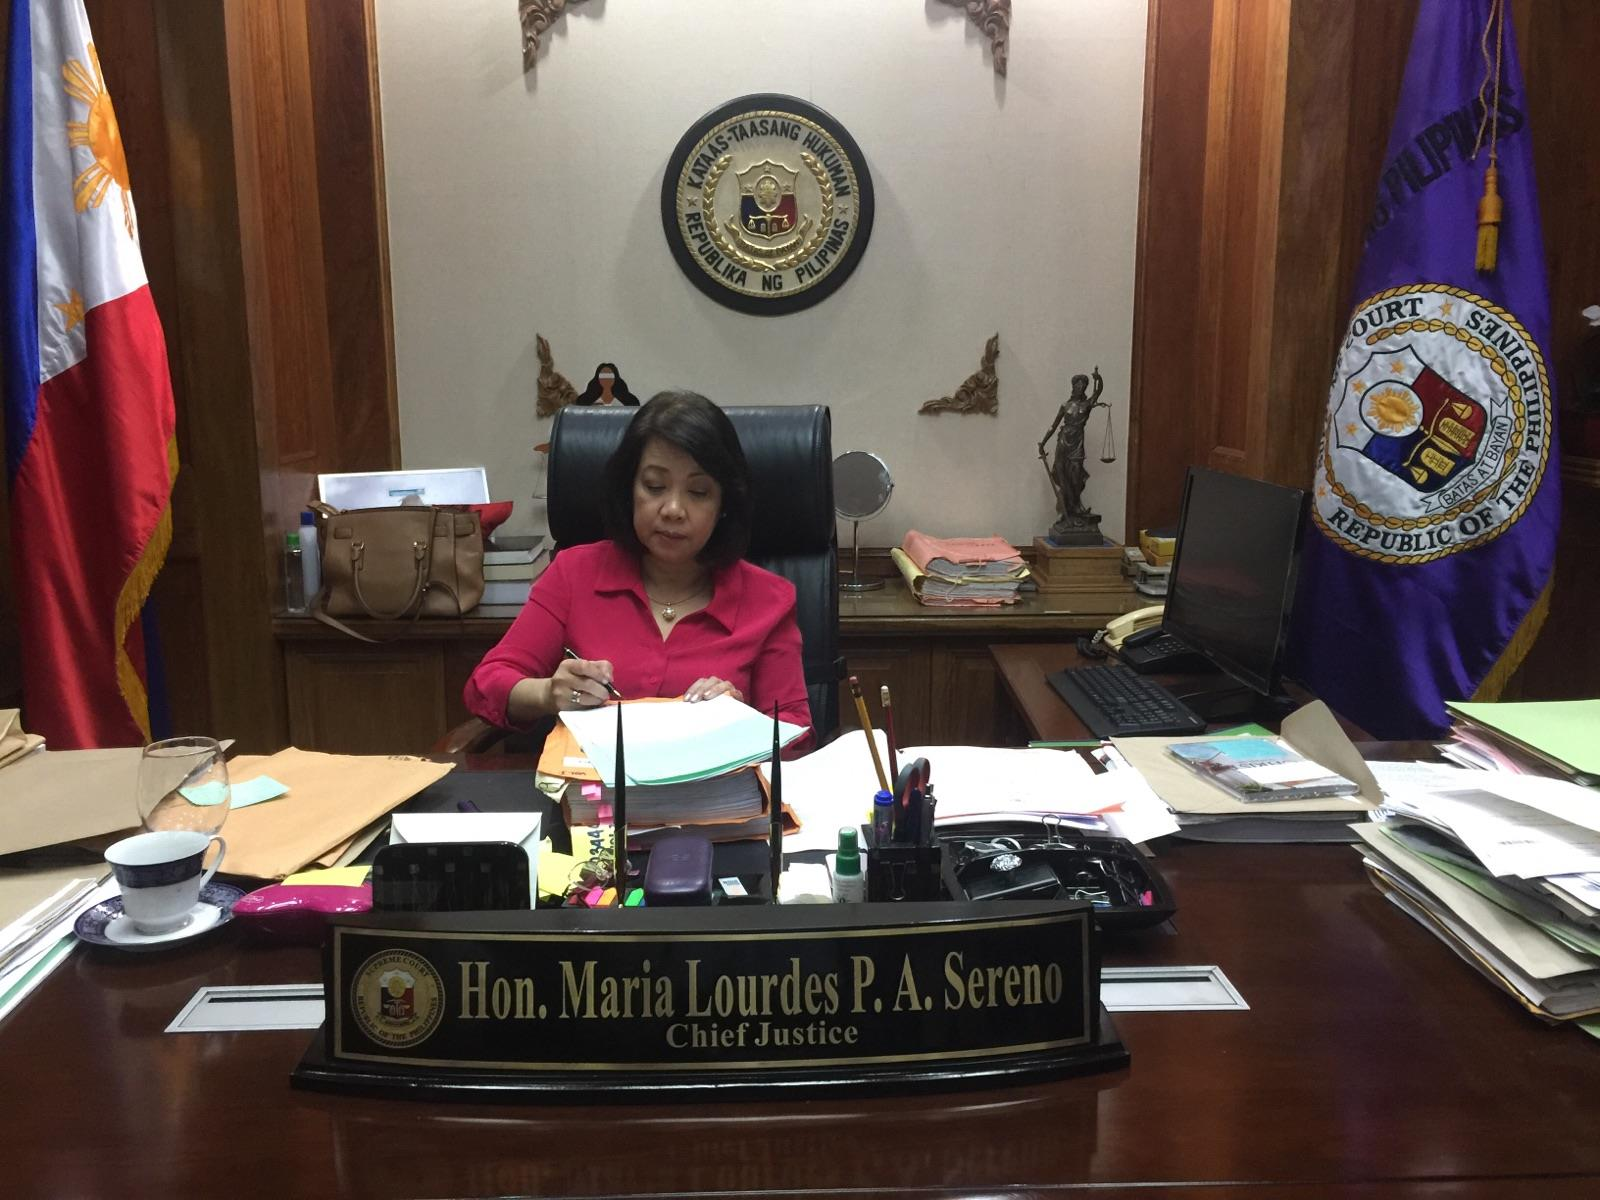 RETURN. Chief Justice Maria Lourdes Sereno ends her two-month indefinite leave and returns to the Supreme Court on May 9, 2018, or two days before her colleagues are scheduled to vote on the petition to oust her. Photo by the Office of the Chief Justice